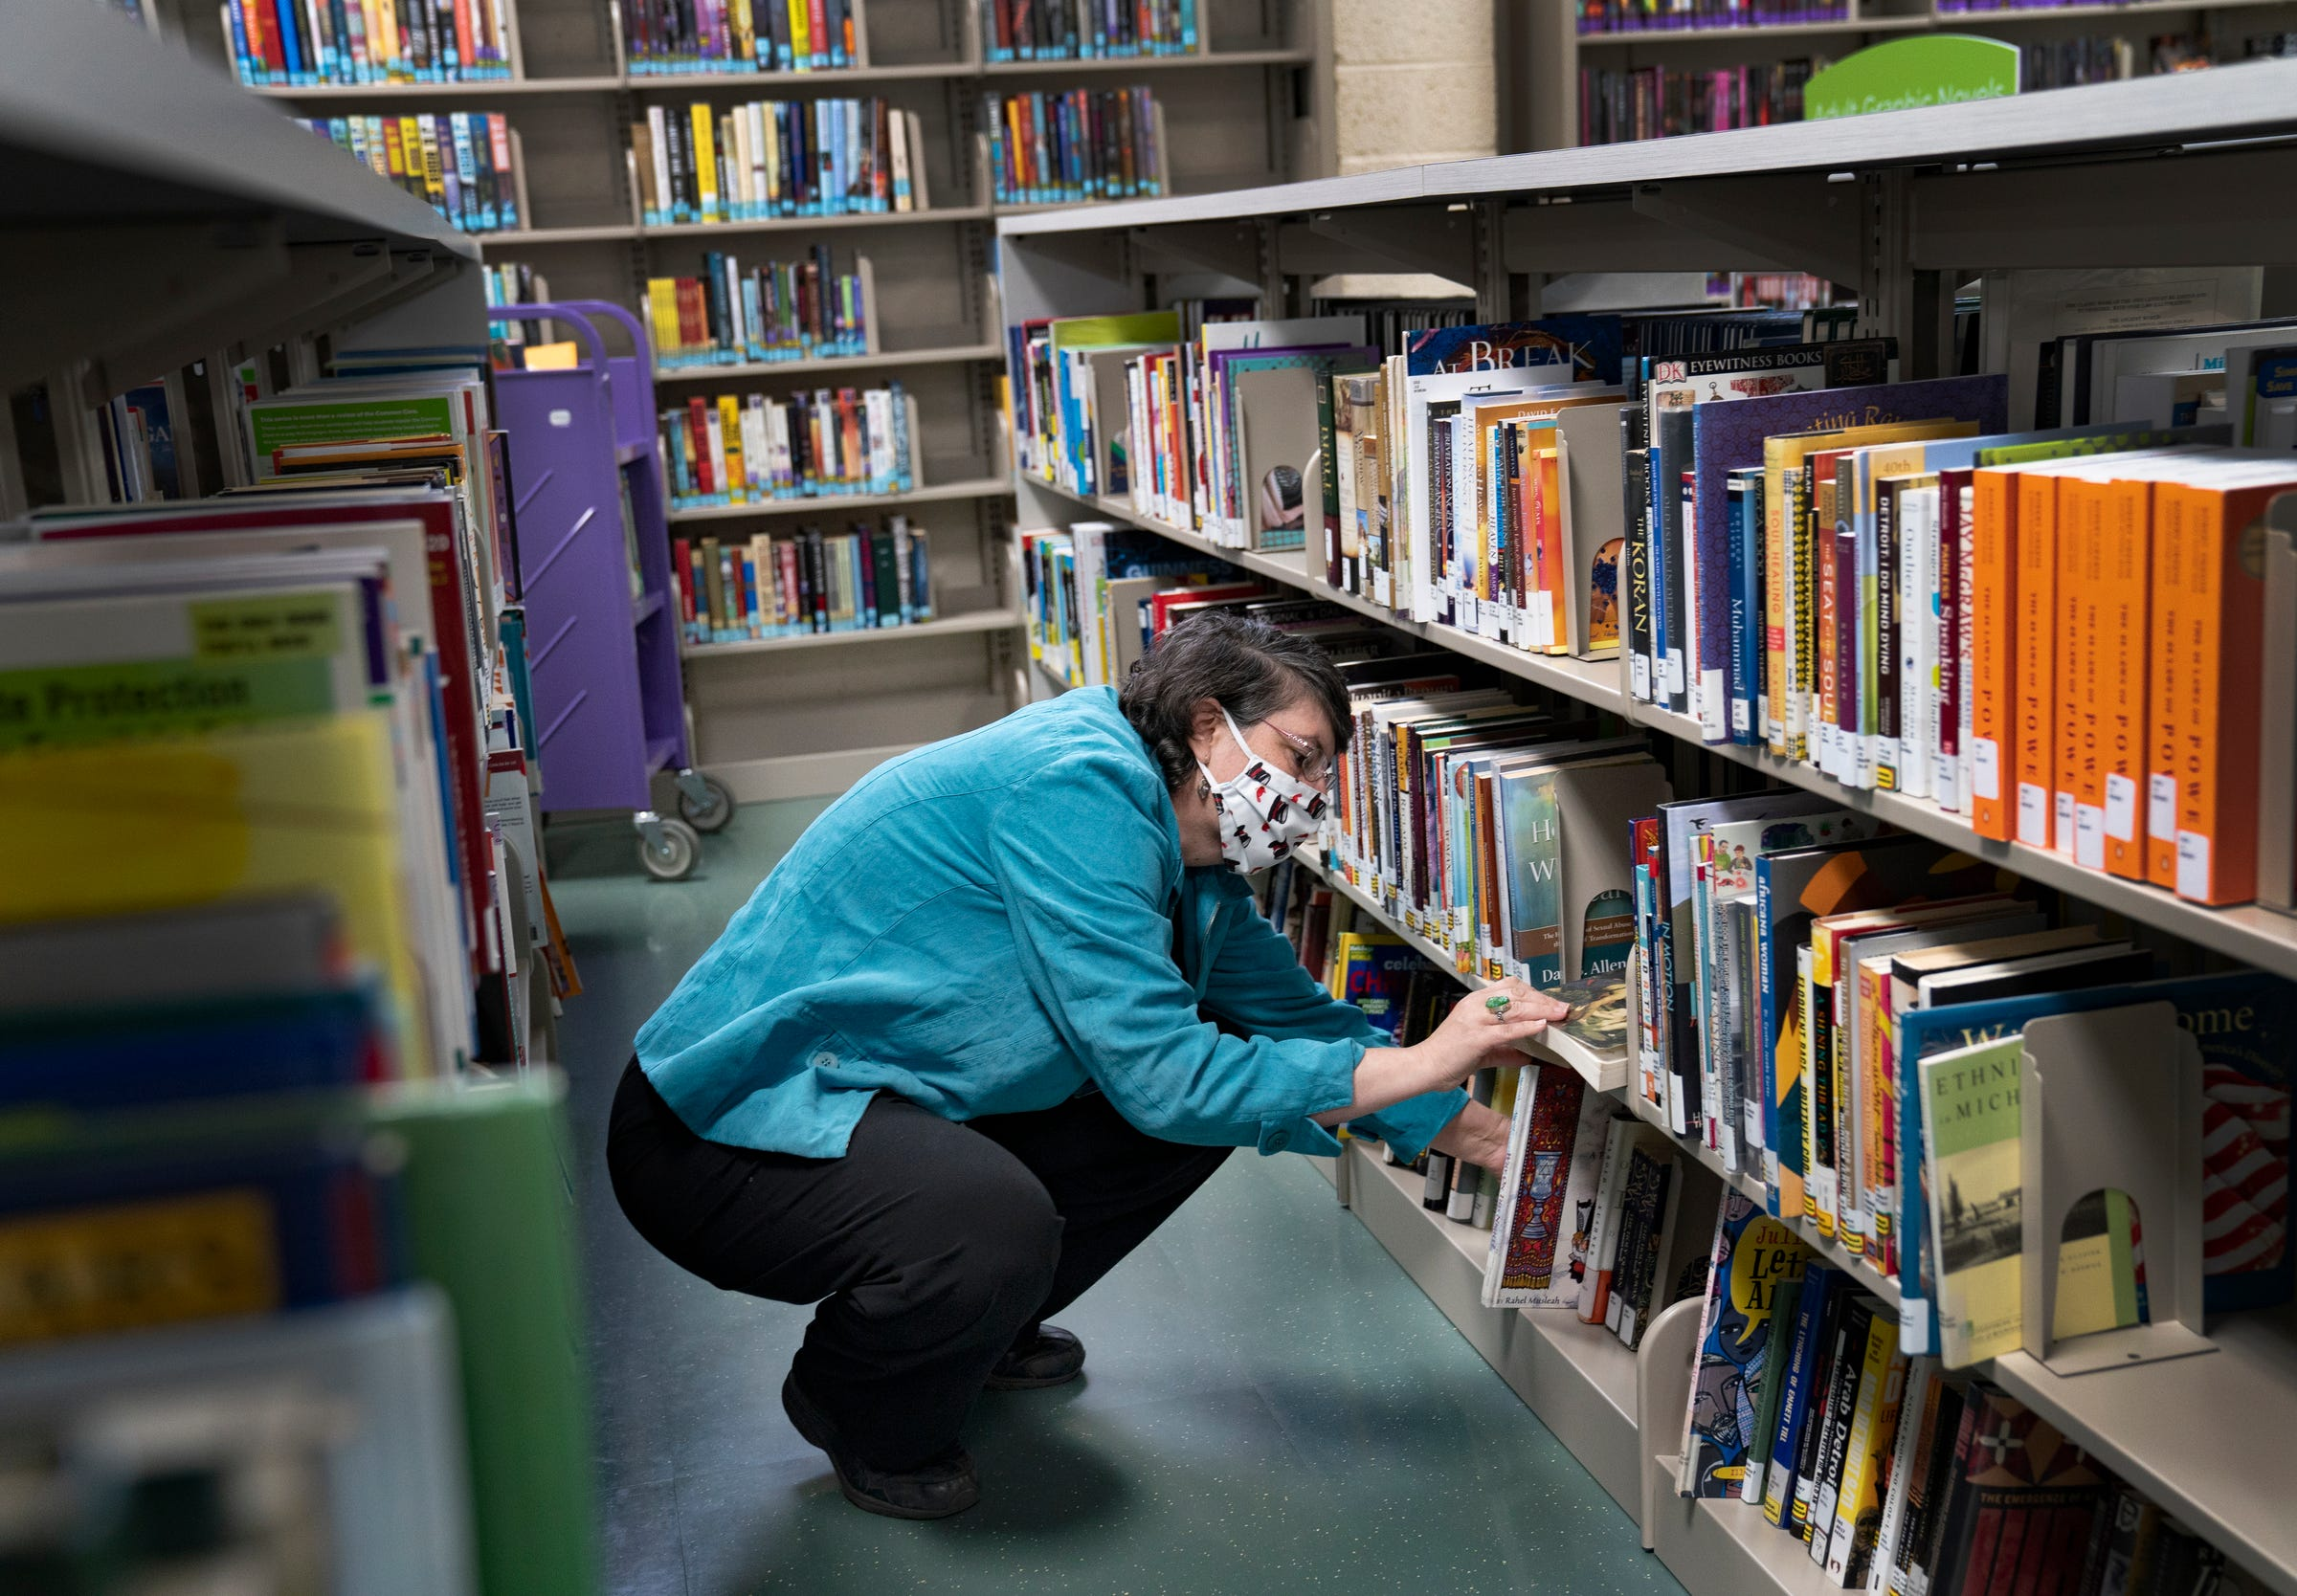 Mary Jo Vortkamp, 52 of New Haven, reshelves books on Thursday, April 29, 2021 at the Detroit Public Library Jefferson Branch. Vortkamp is the manager and children's librarian at the Jefferson Branch. Vortkamp was formerly at the Franklin Branch that closed in March 2020.